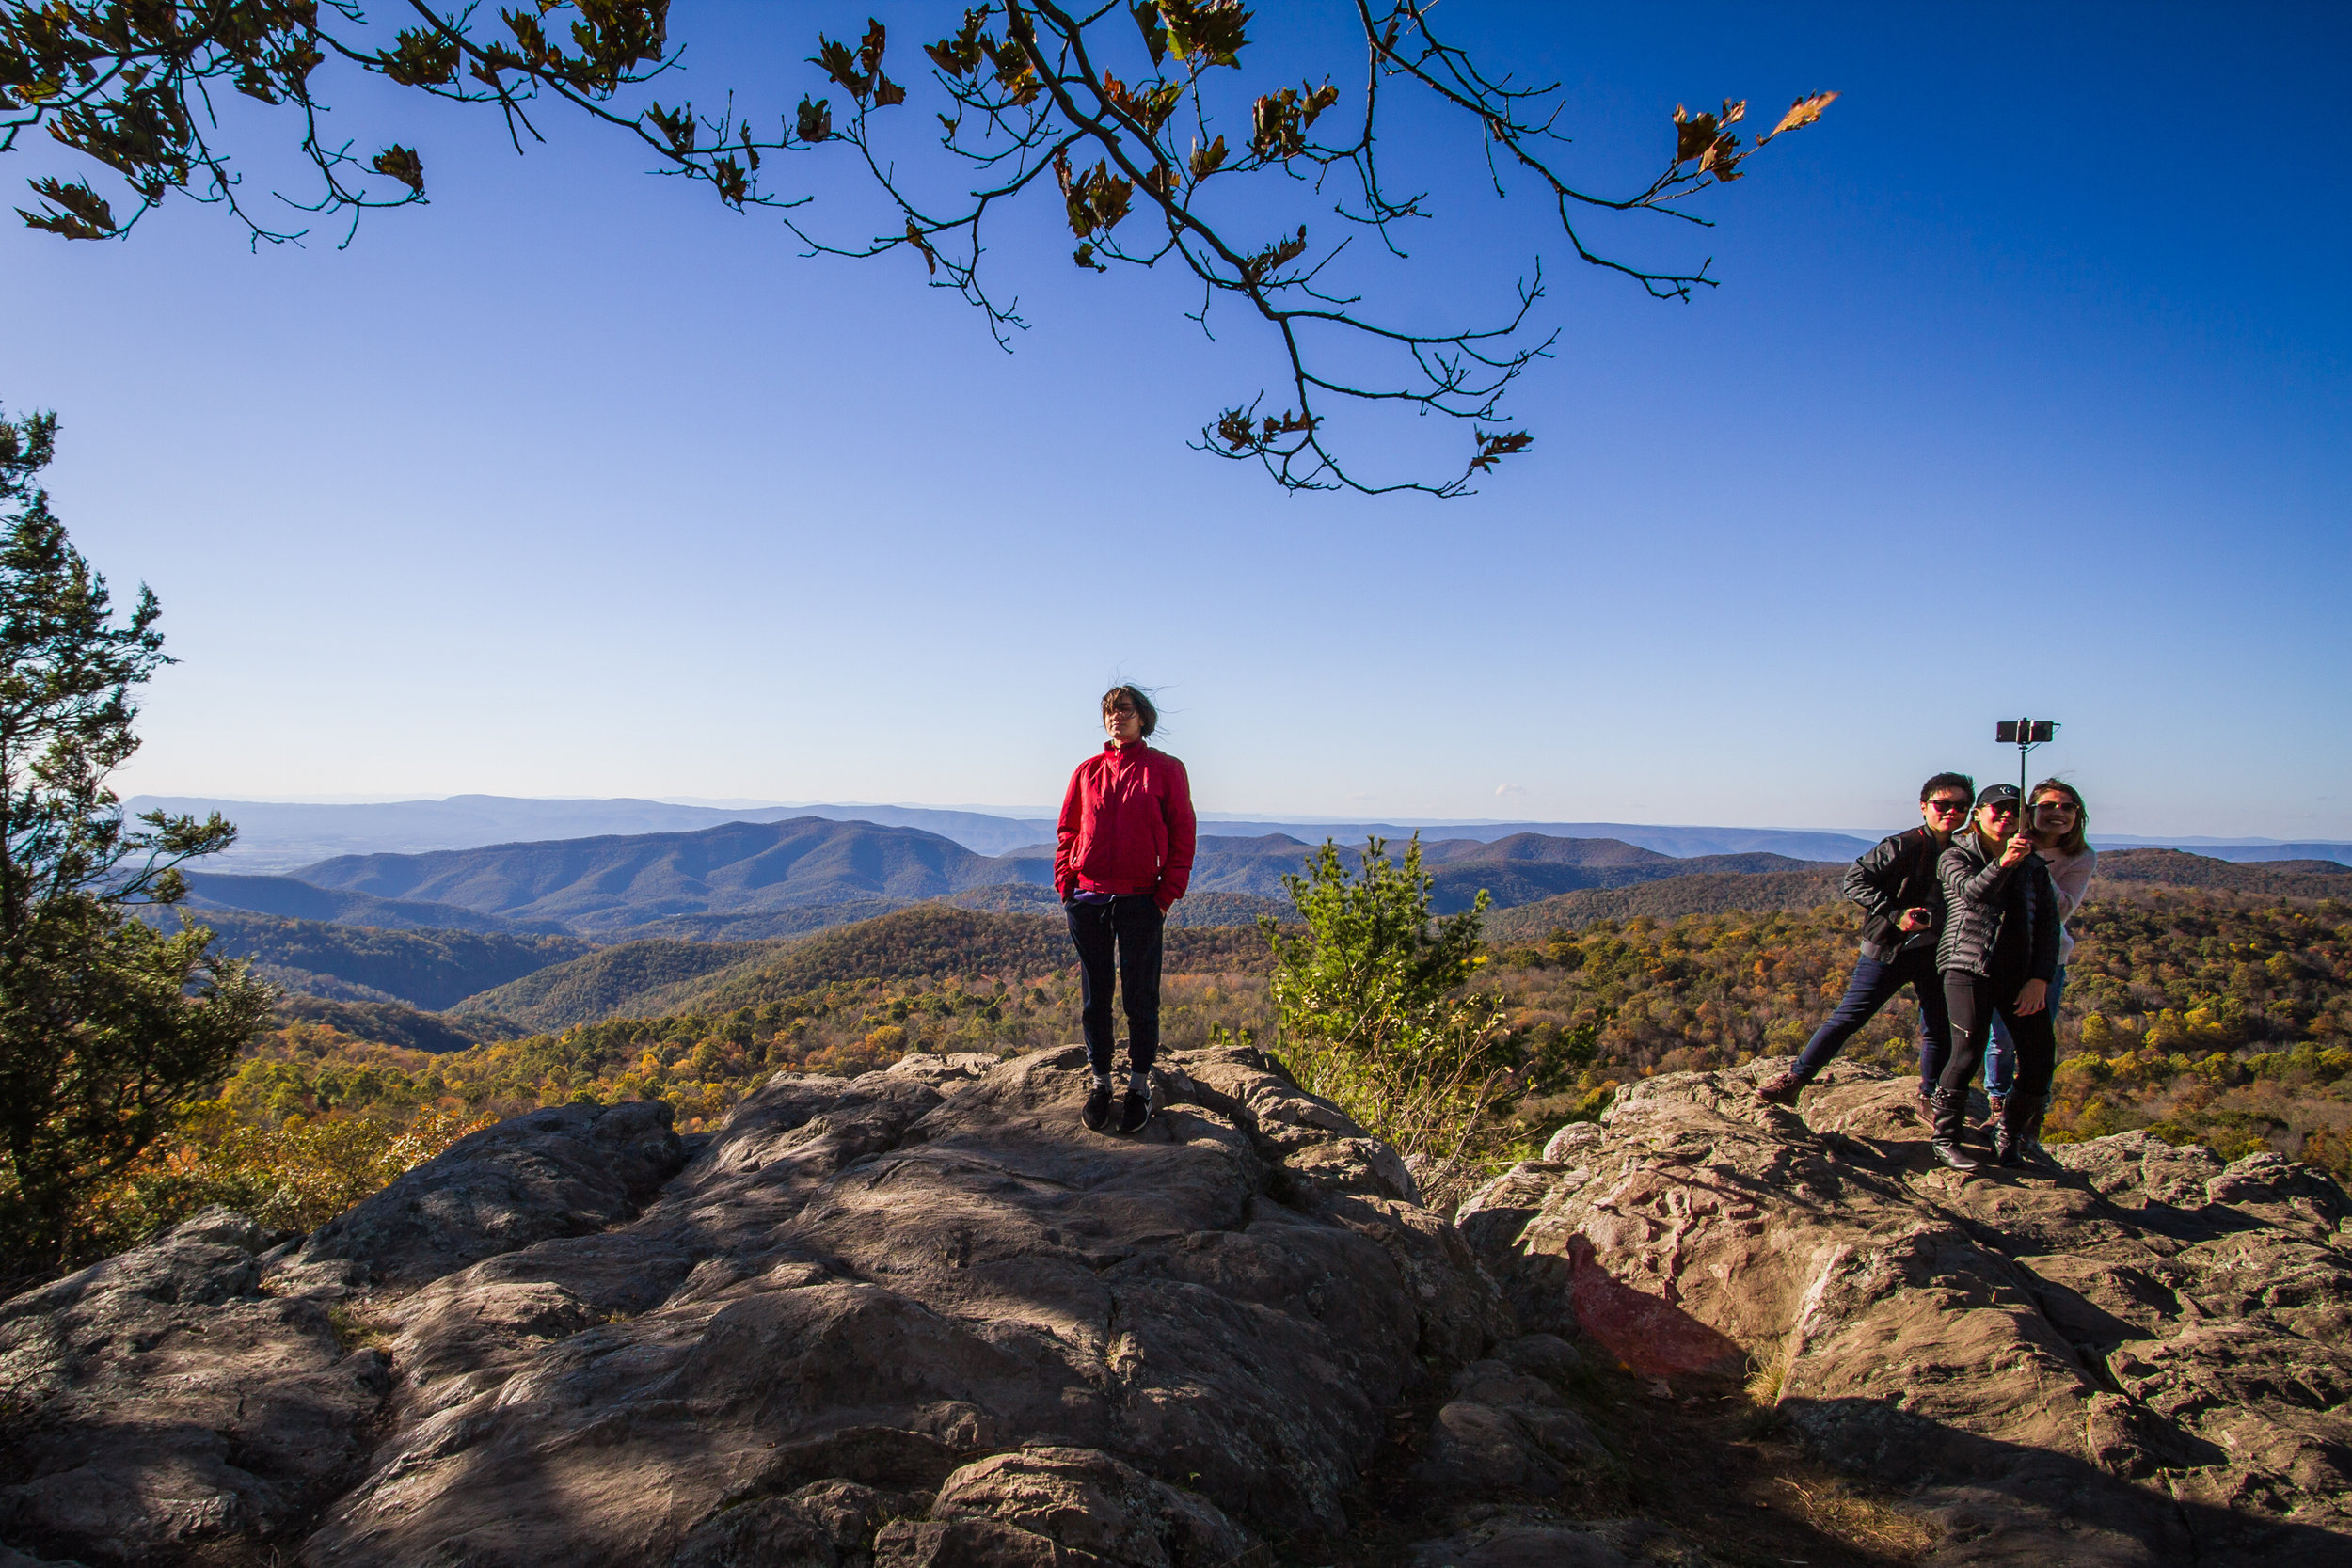 Humans being humans:West view from The Point Overlook, Shenandoah